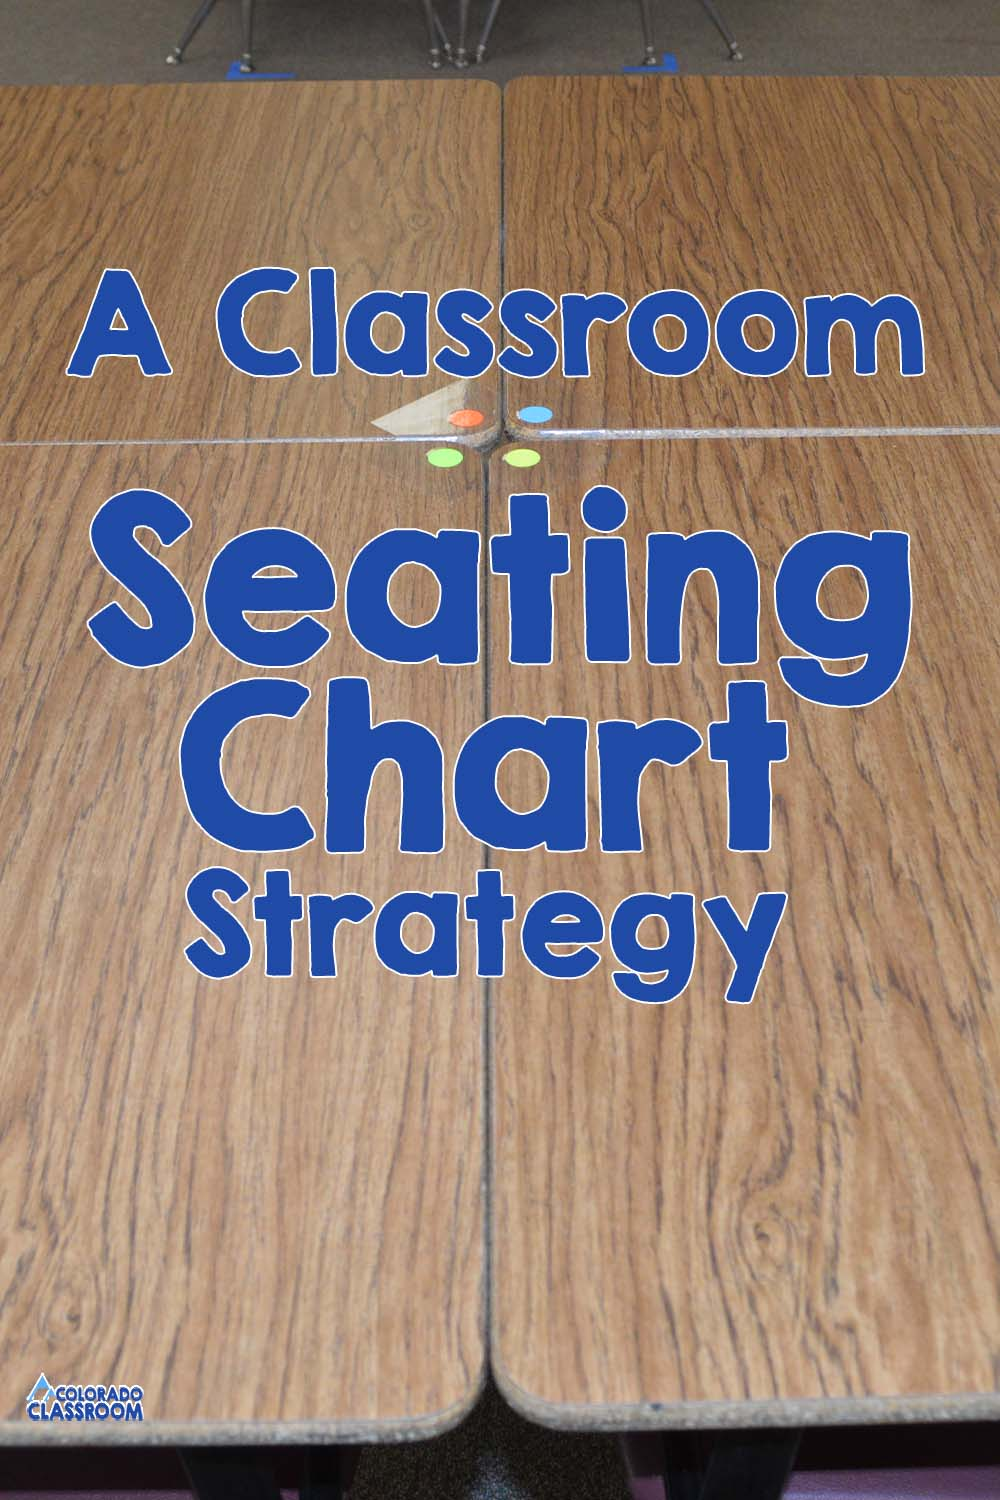 A Classroom Seating Strategy - Four desks positioned in a pod with four stickers in the center, each a different color, to help with grouping.